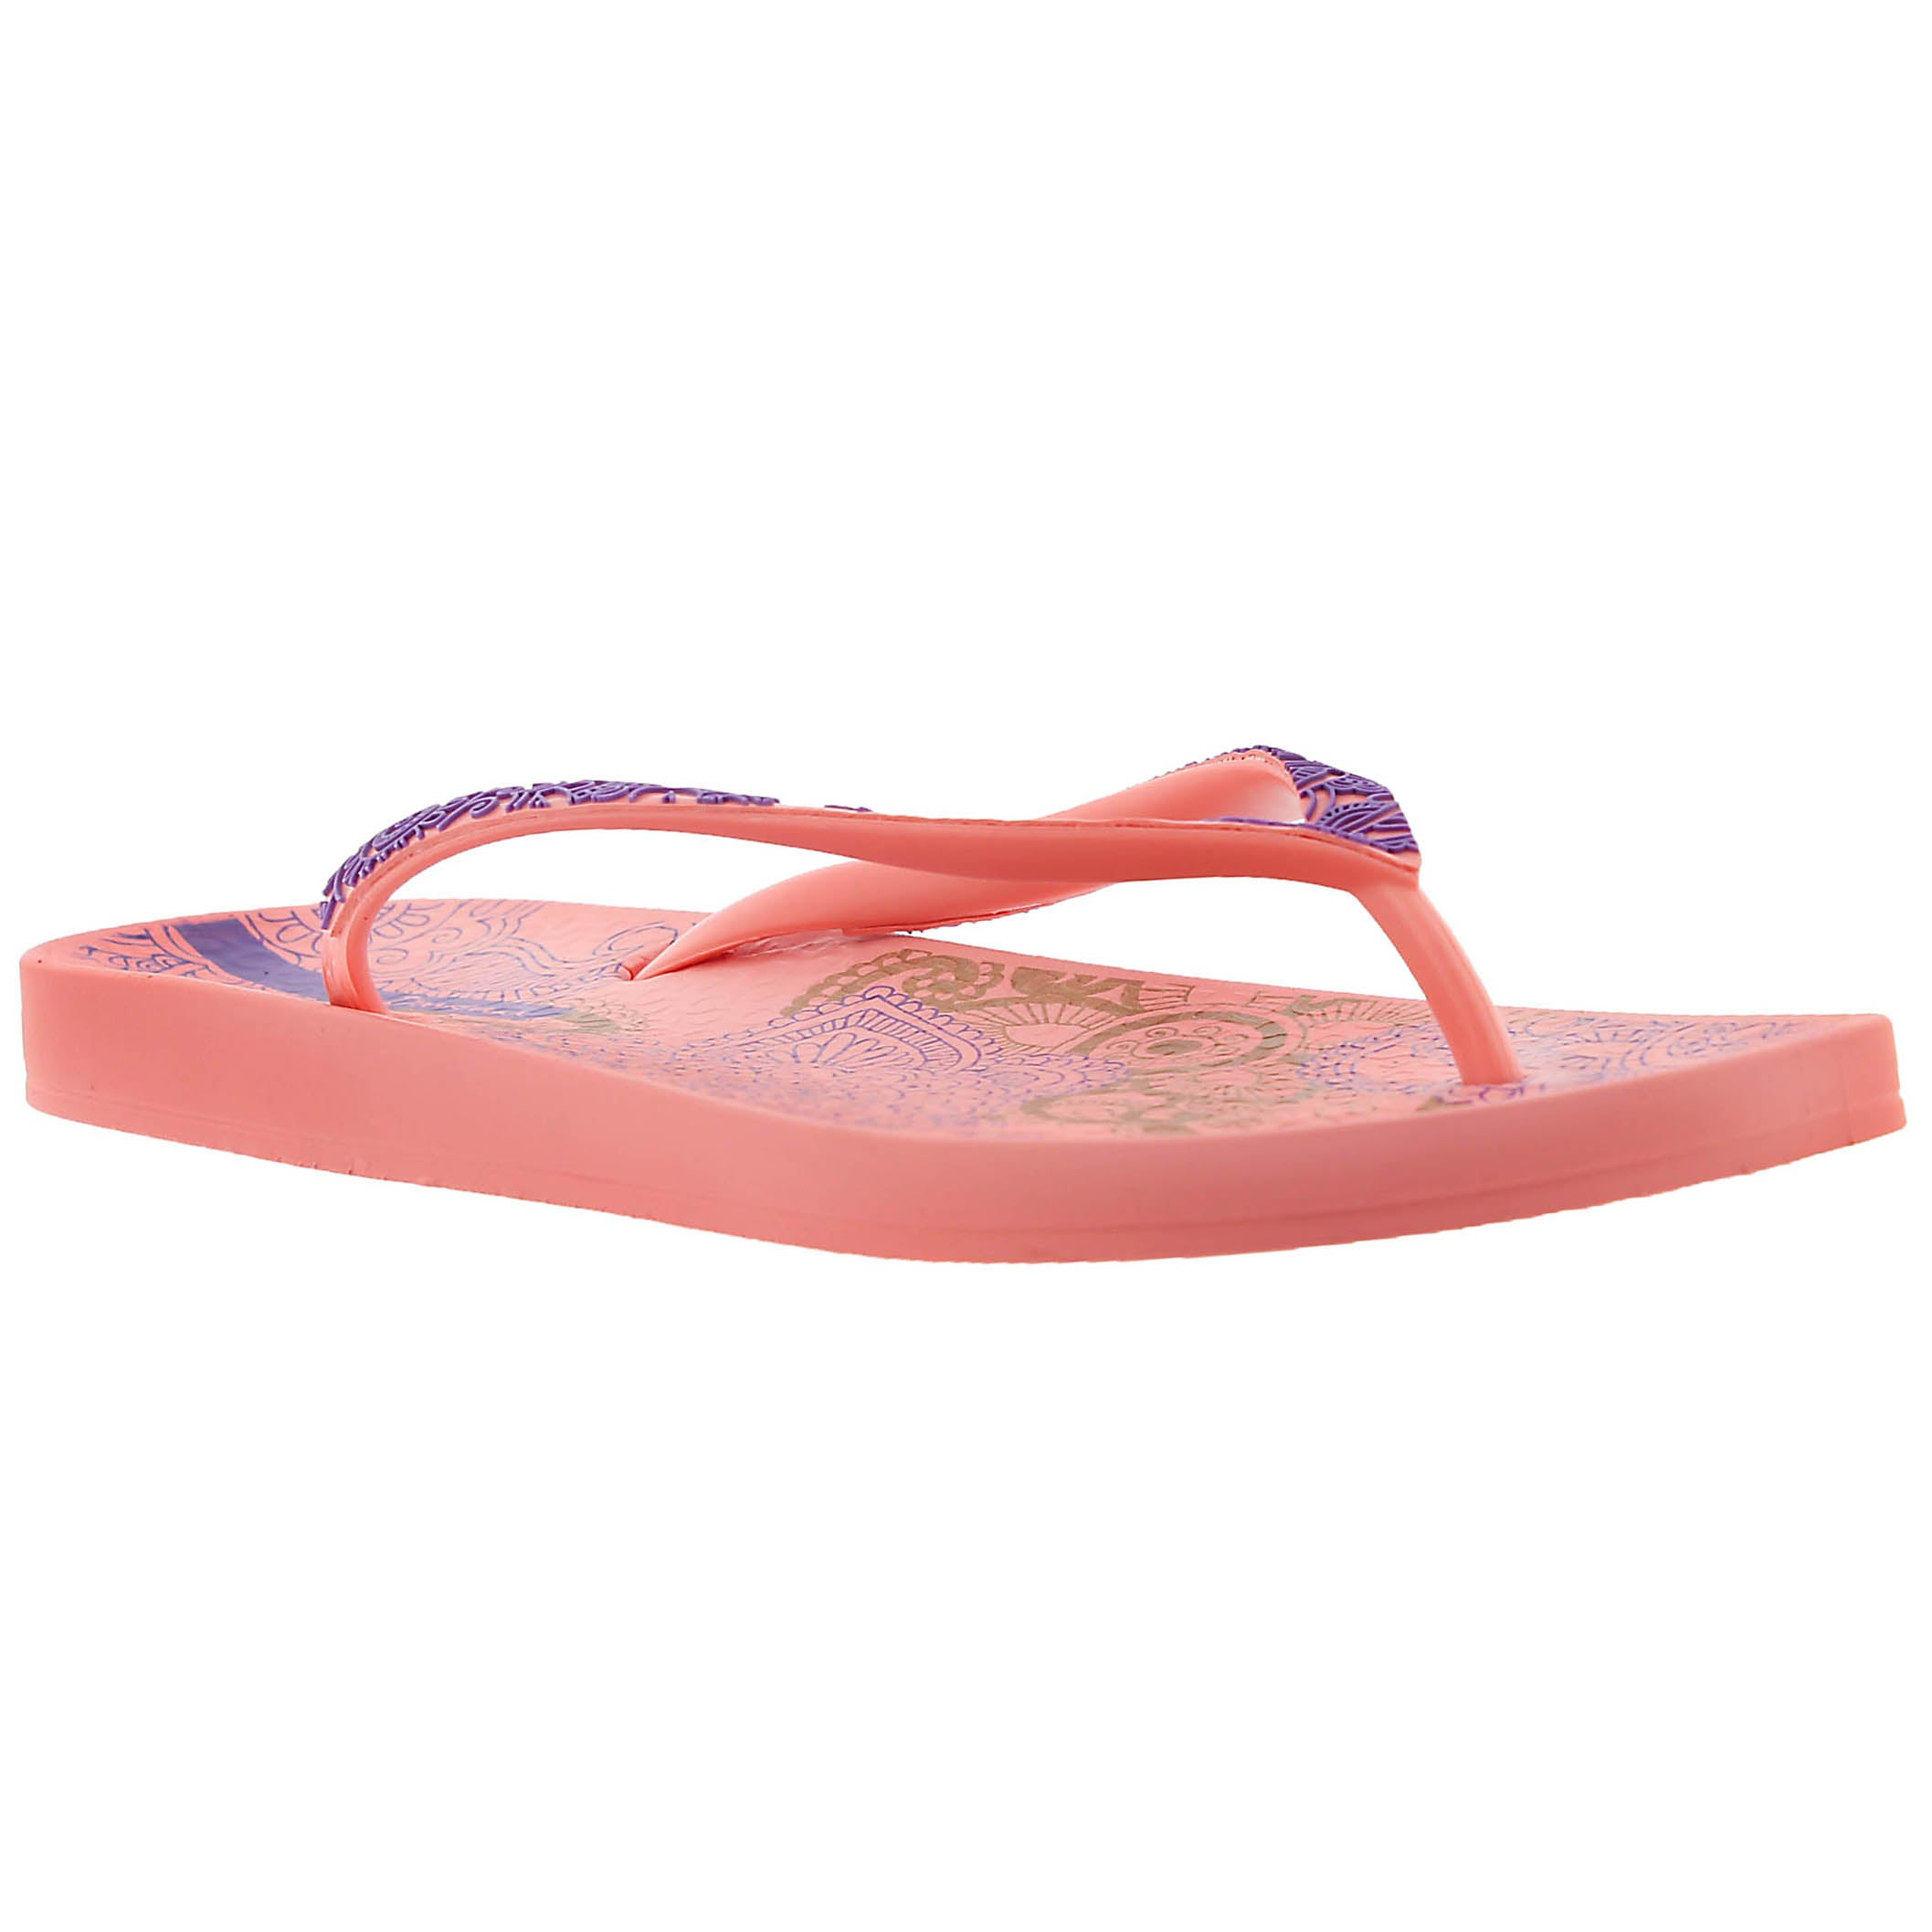 Sandales tongs LACE, rose/violet, femmes